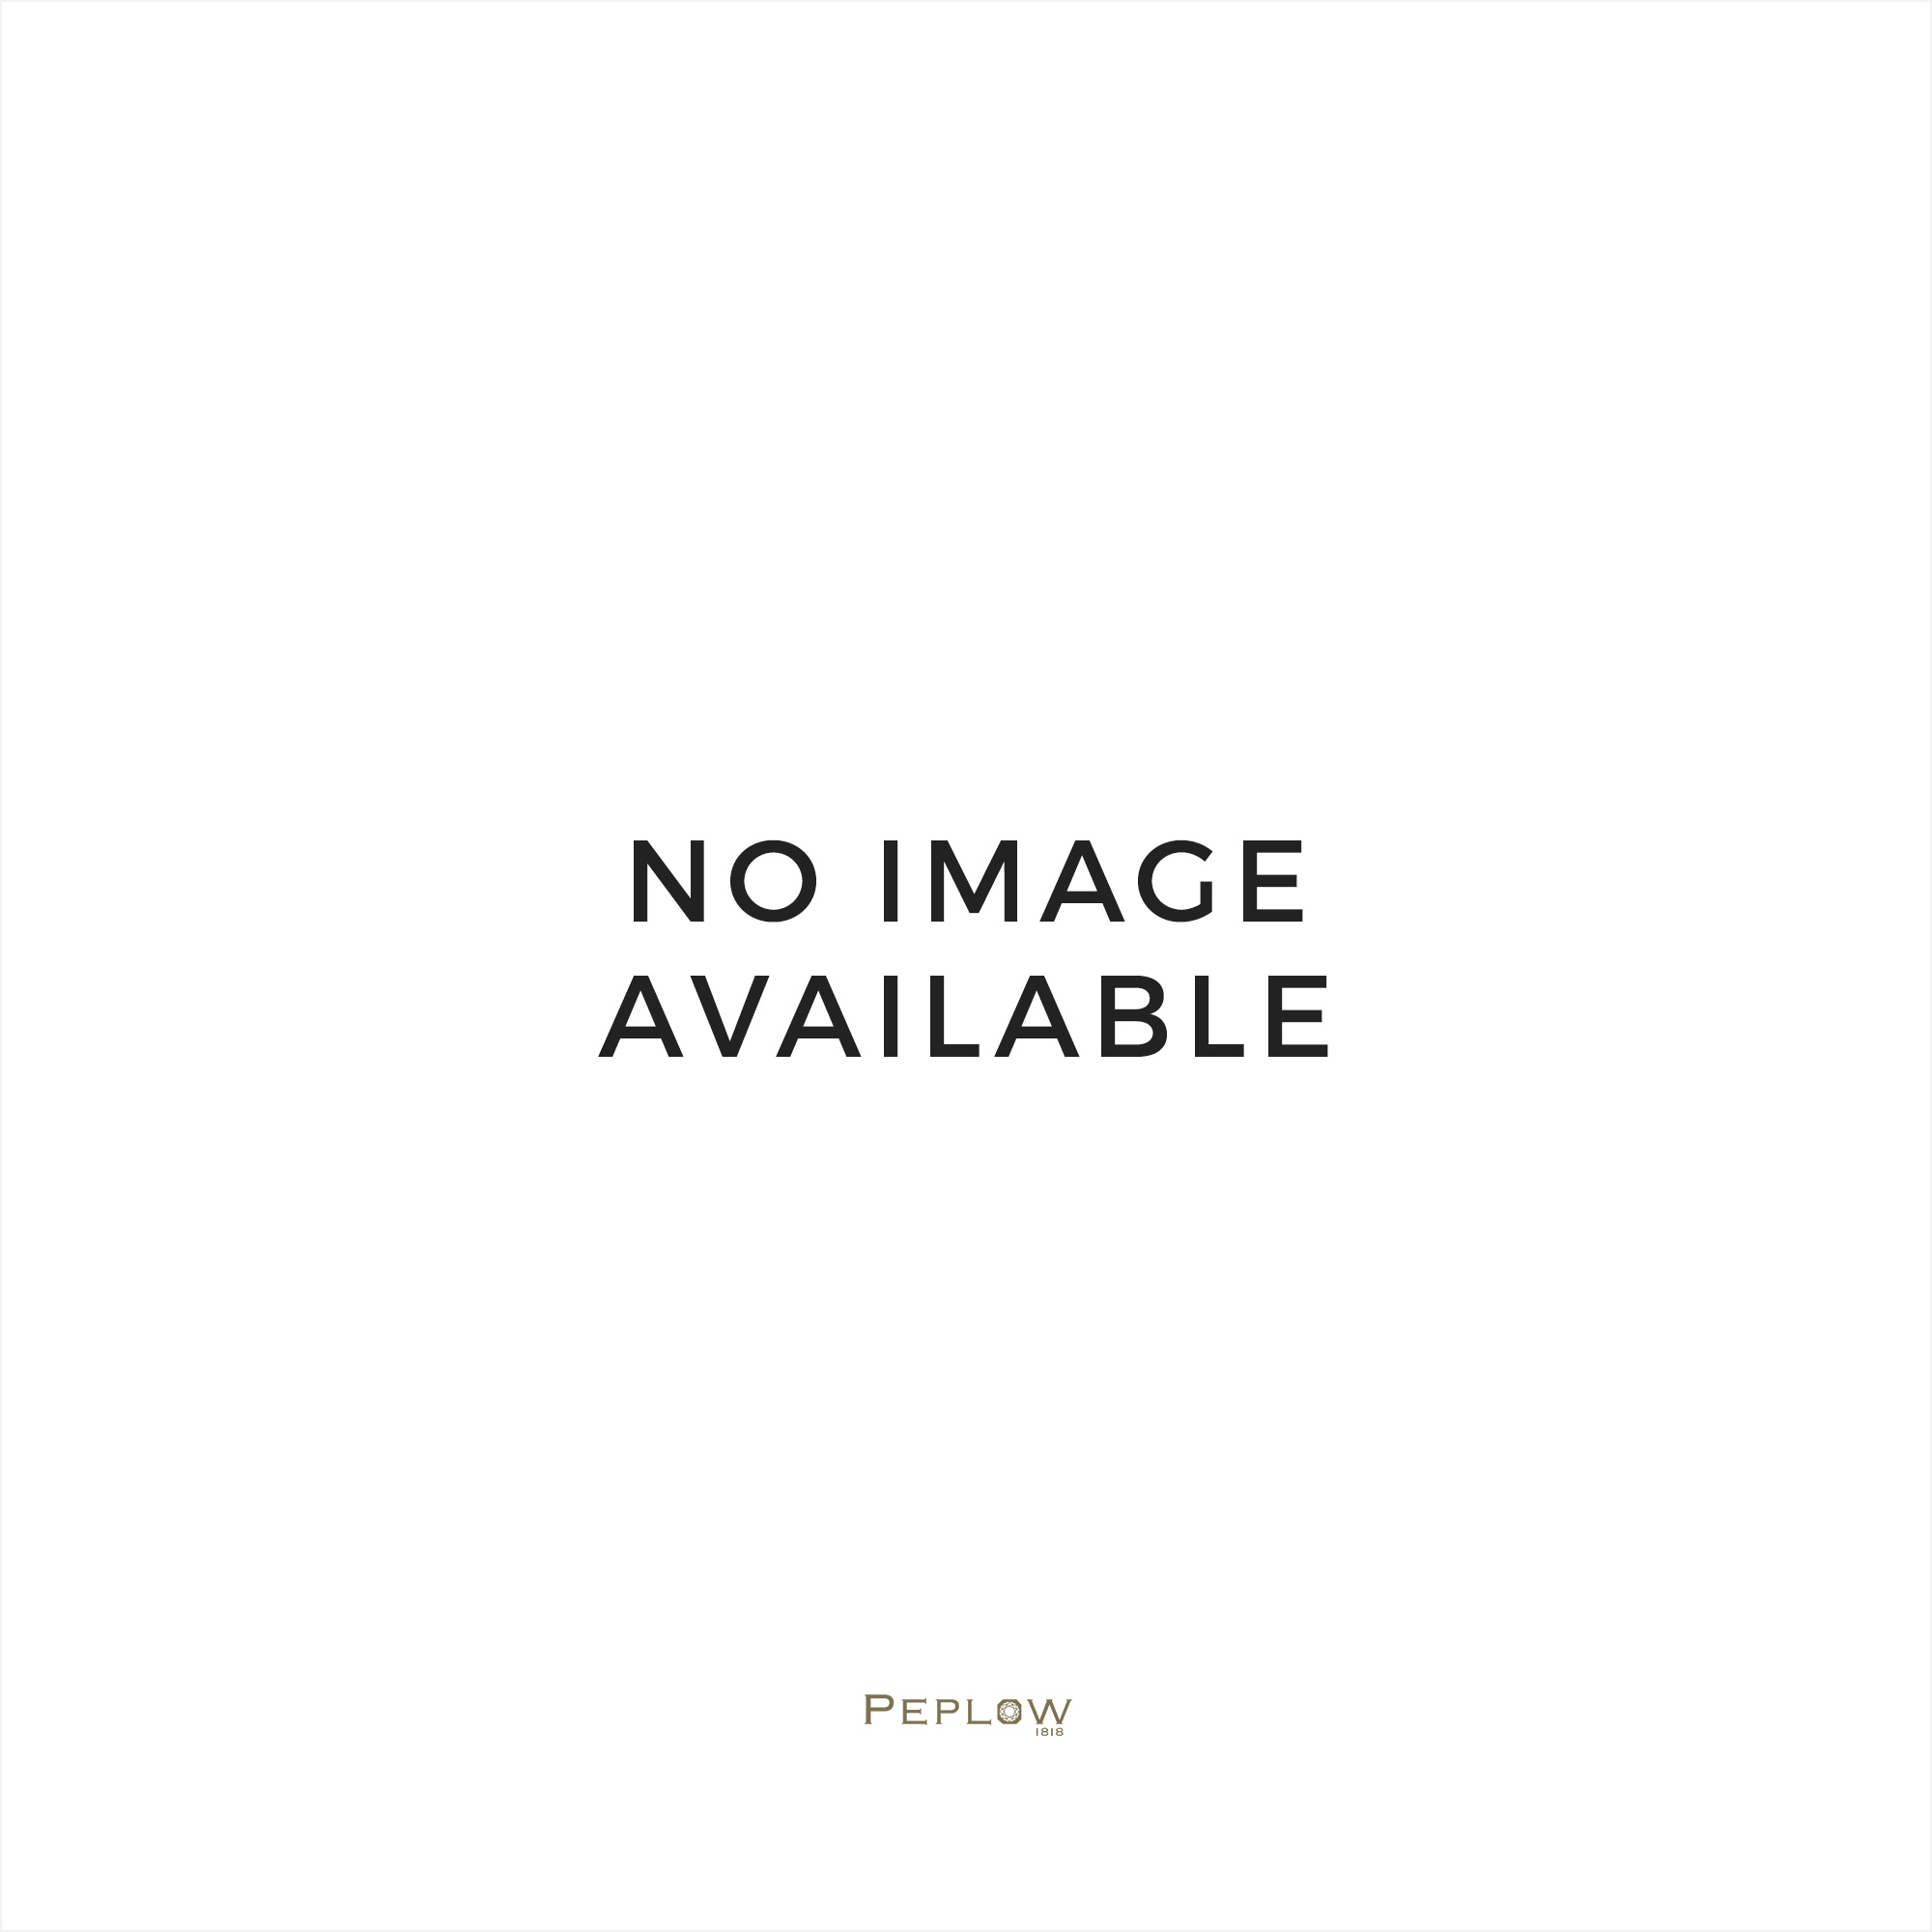 Platinum set single stone 0.73 carat rectangular diamond ring.